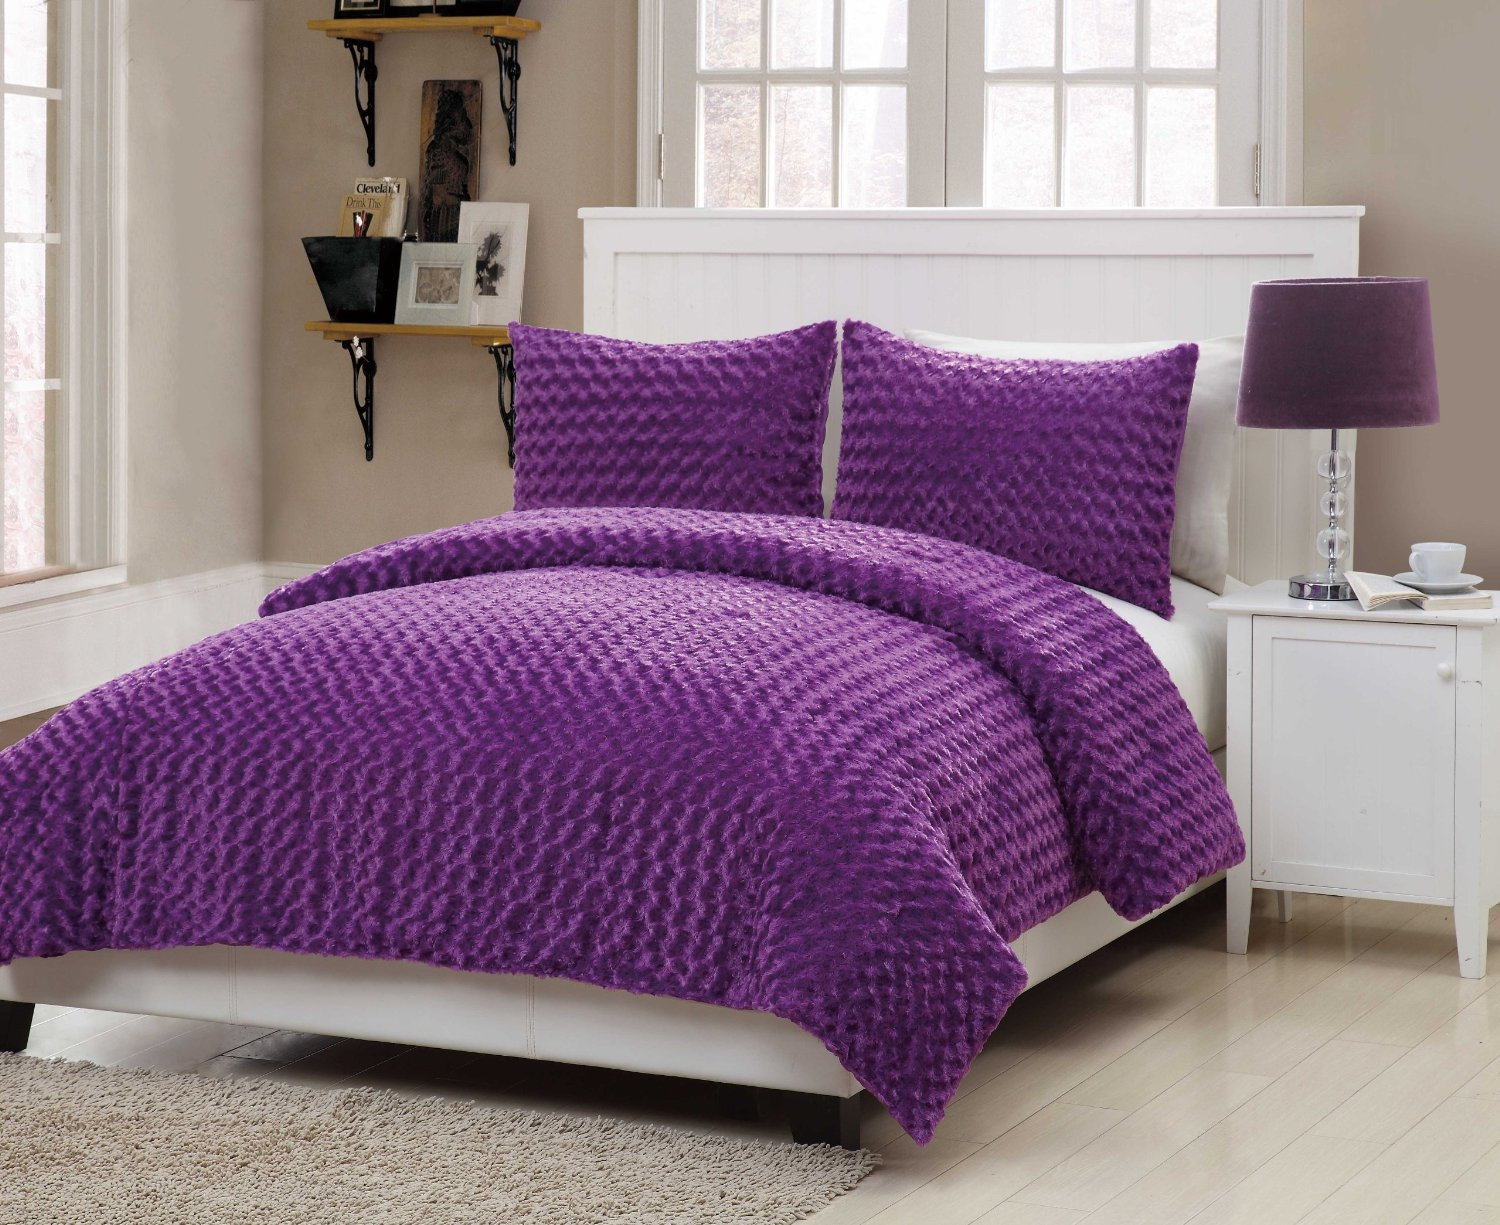 solid purple teen bedding sets. Black Bedroom Furniture Sets. Home Design Ideas